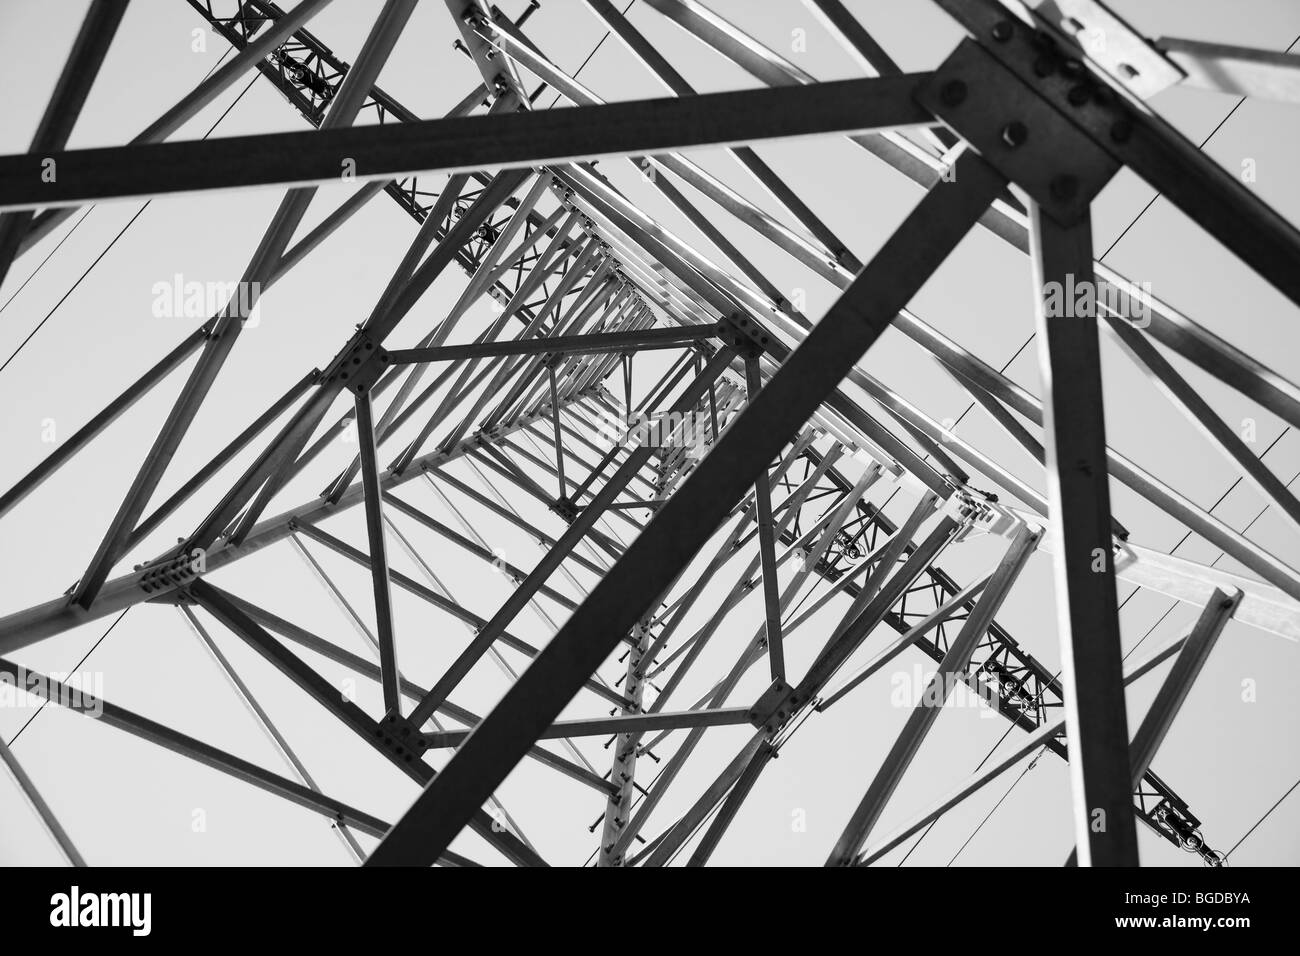 View from below looking up in an electricity pylon, black and white - Stock Image